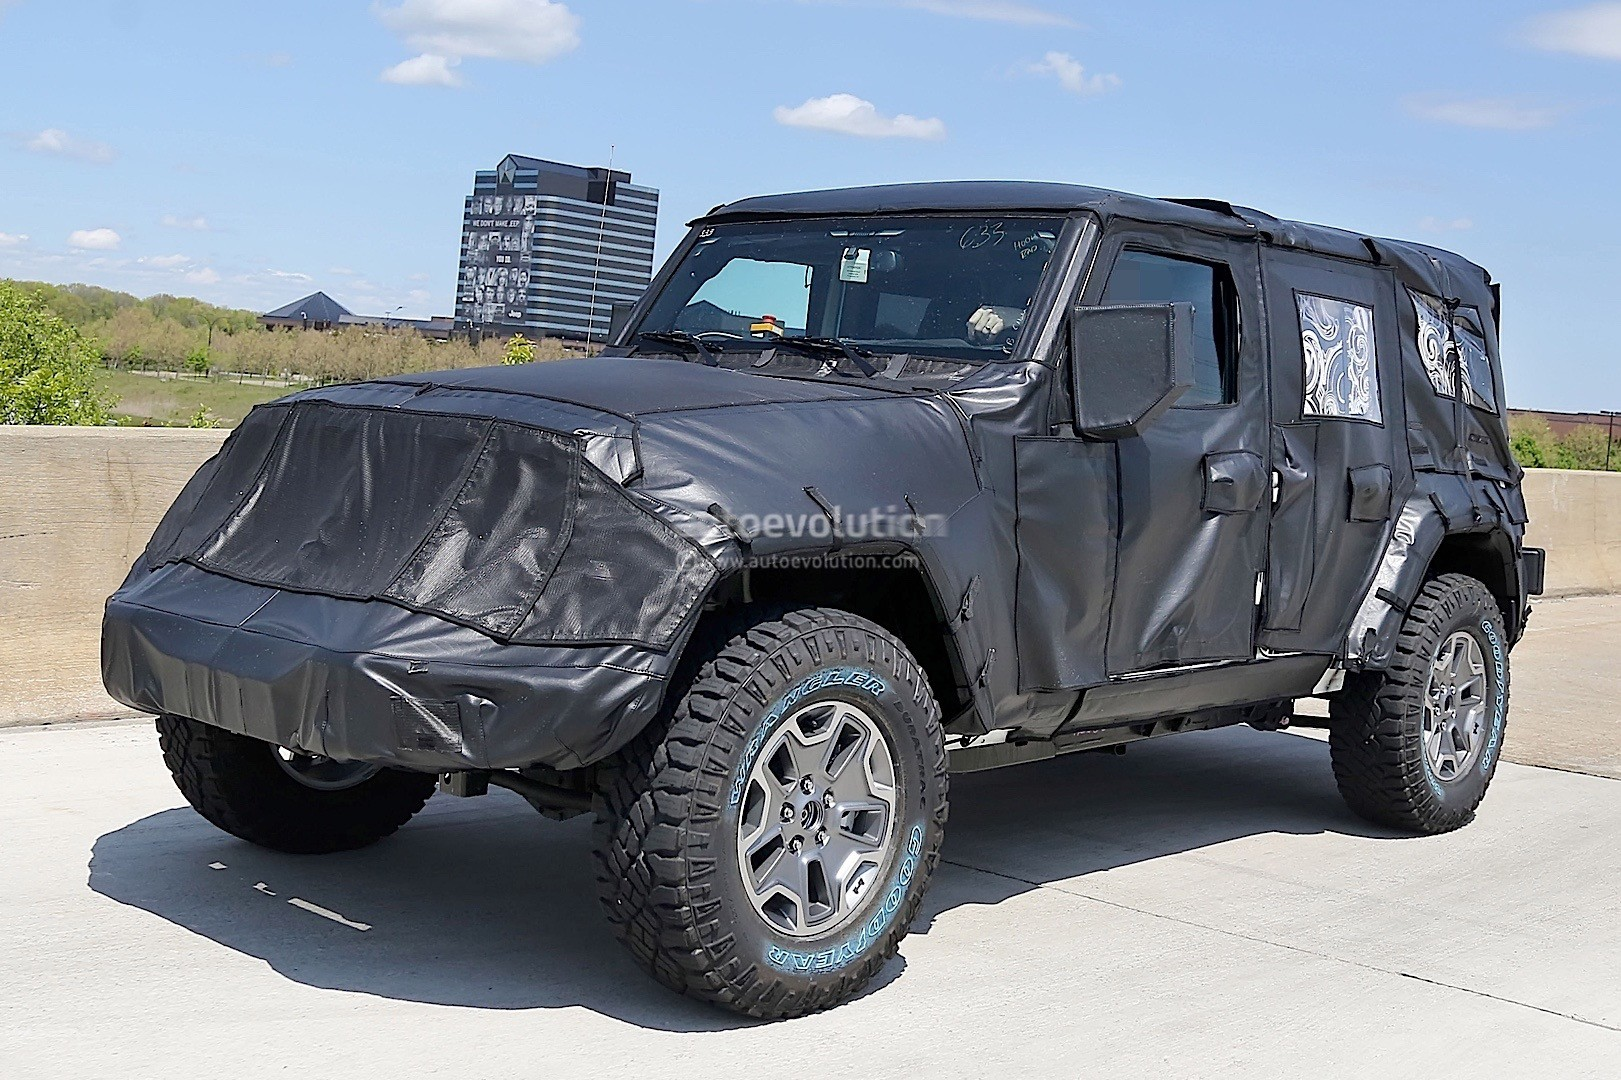 2018 Jeep Wrangler Jl Spied Shows New Hardware